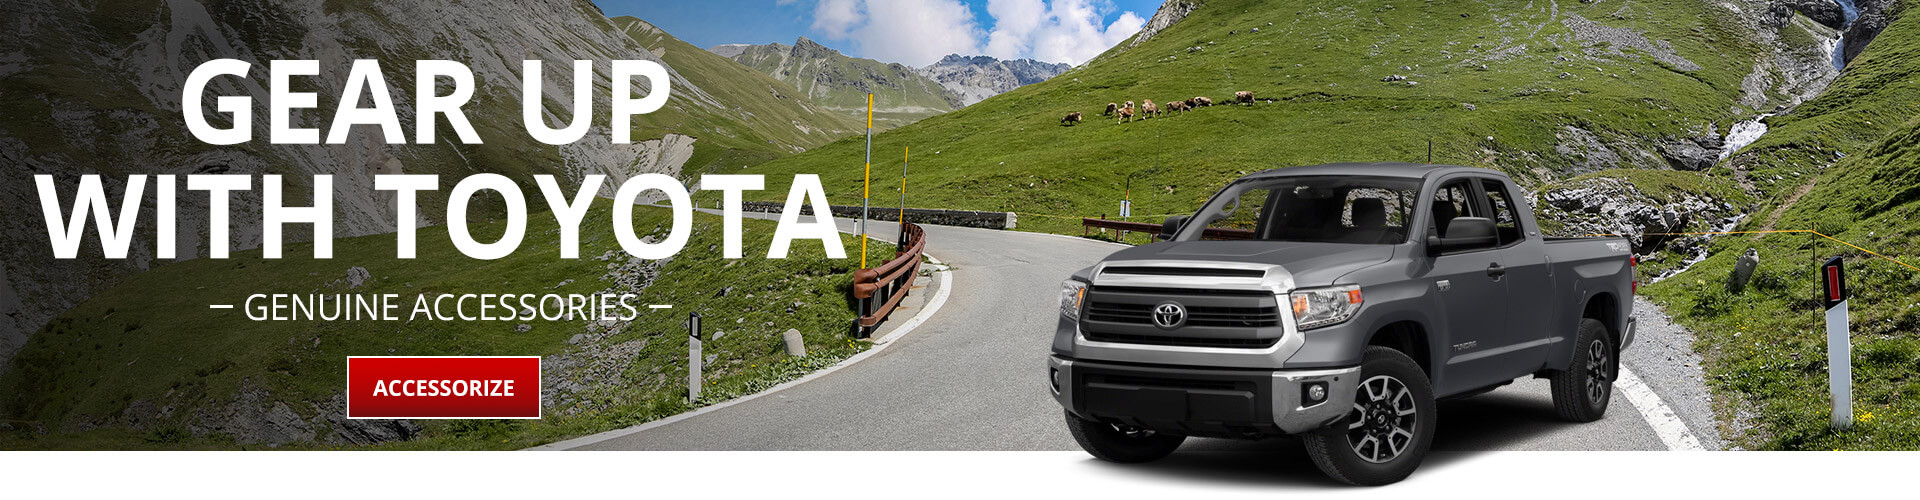 Toyota Genuine Accessories - Roof racks, wheels, truck accessories, hauling